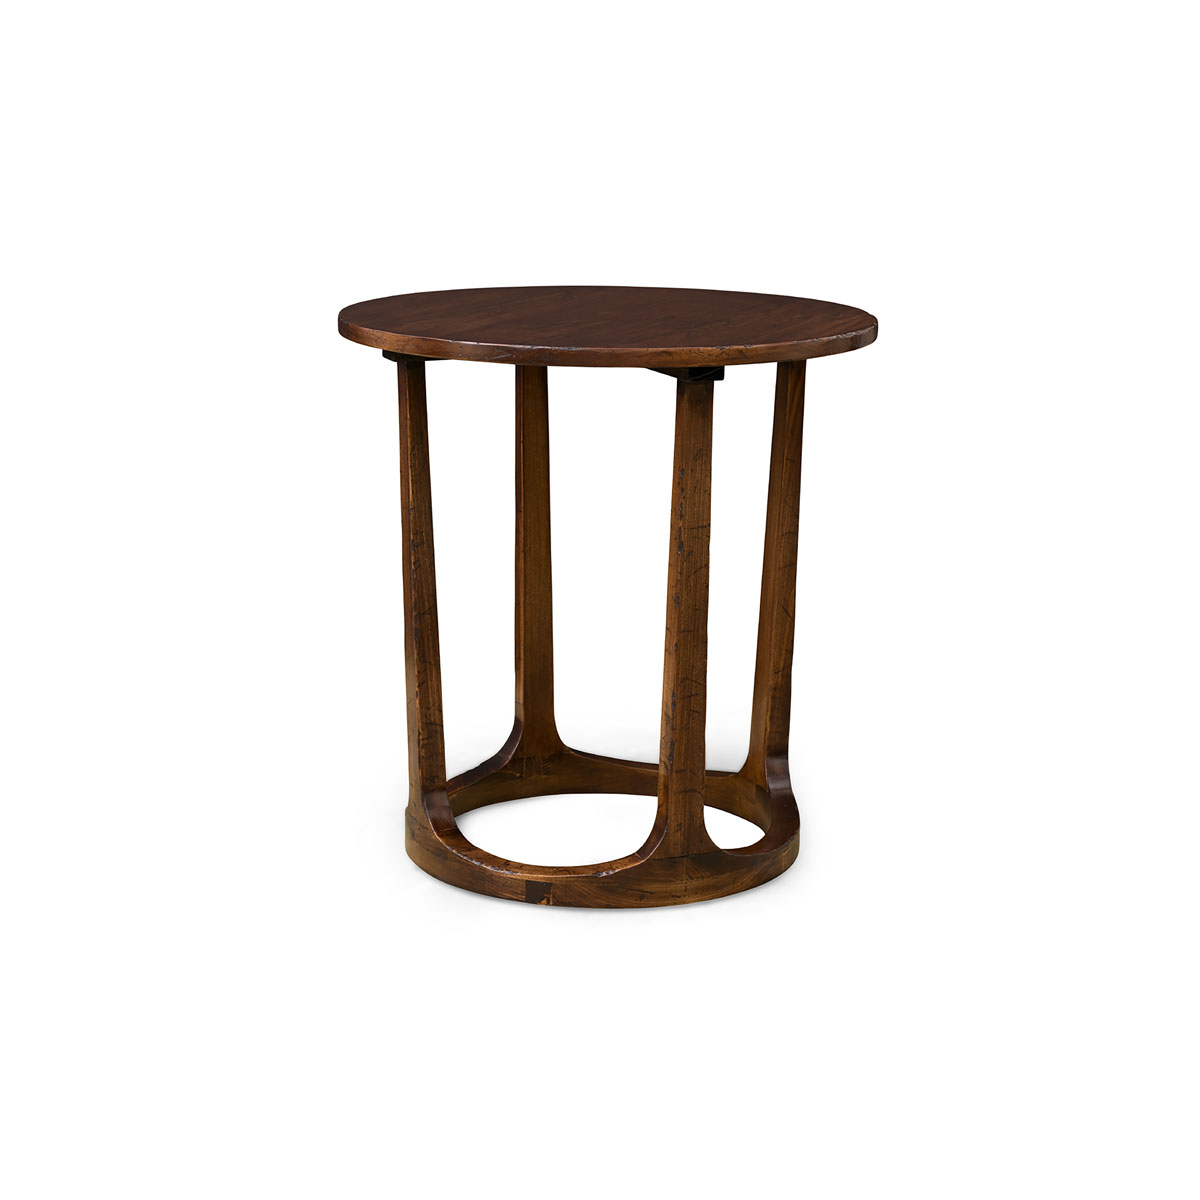 55001-Round-Side-Table.jpg